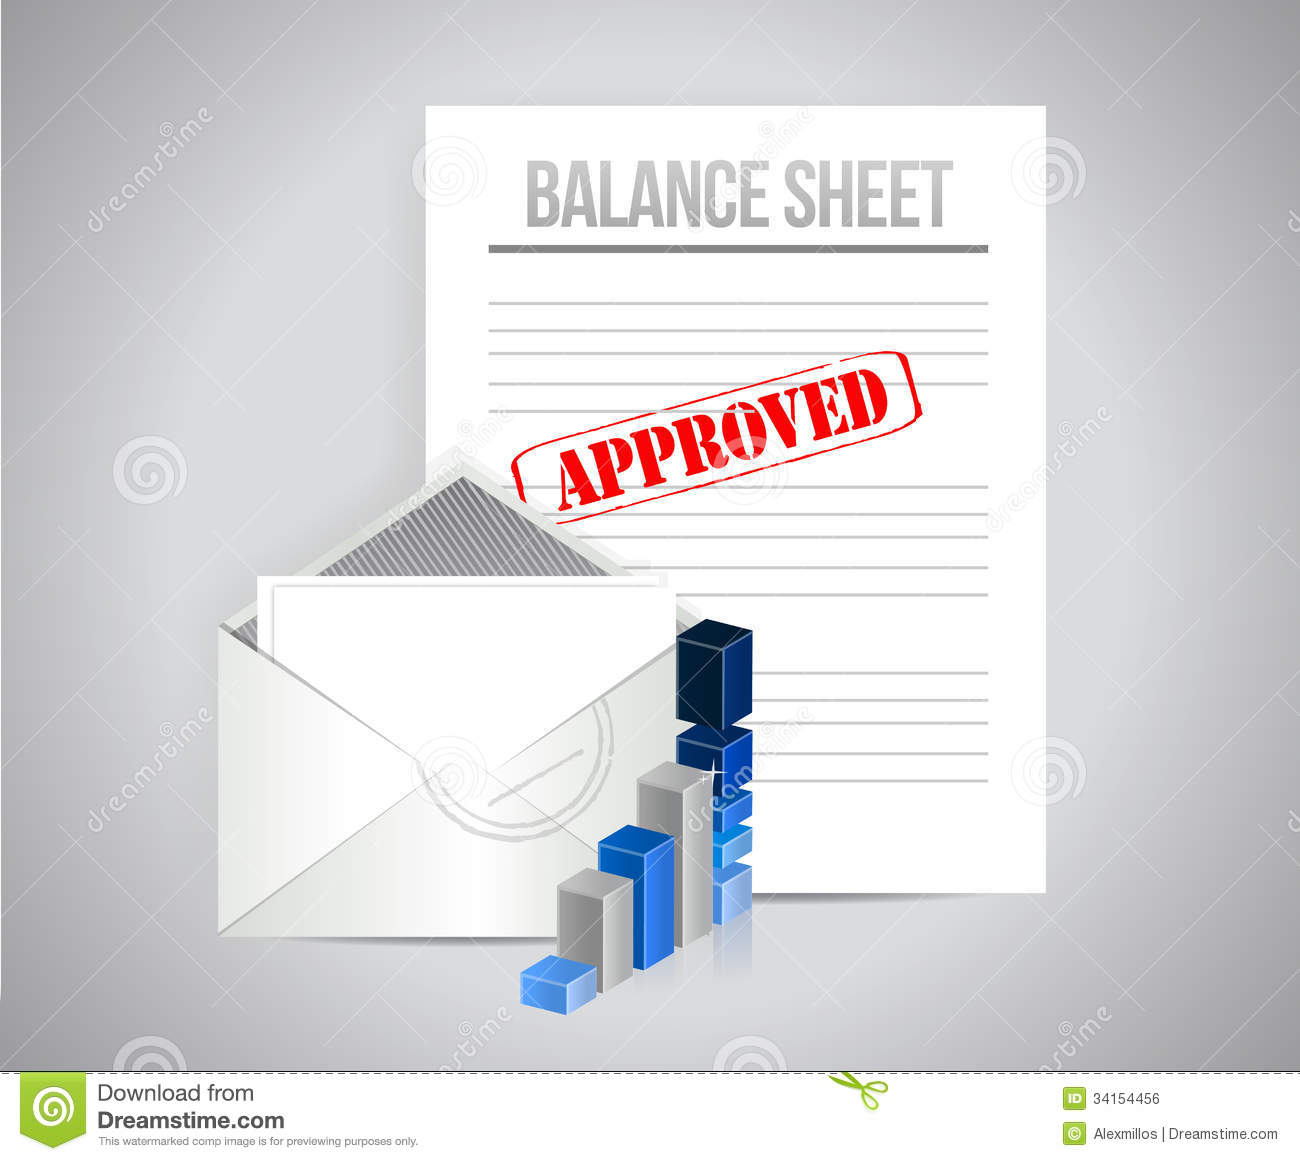 Clipart balance sheet royalty free library Balance Sheet Approved Concept Illustration Royalty Free Stock ... royalty free library